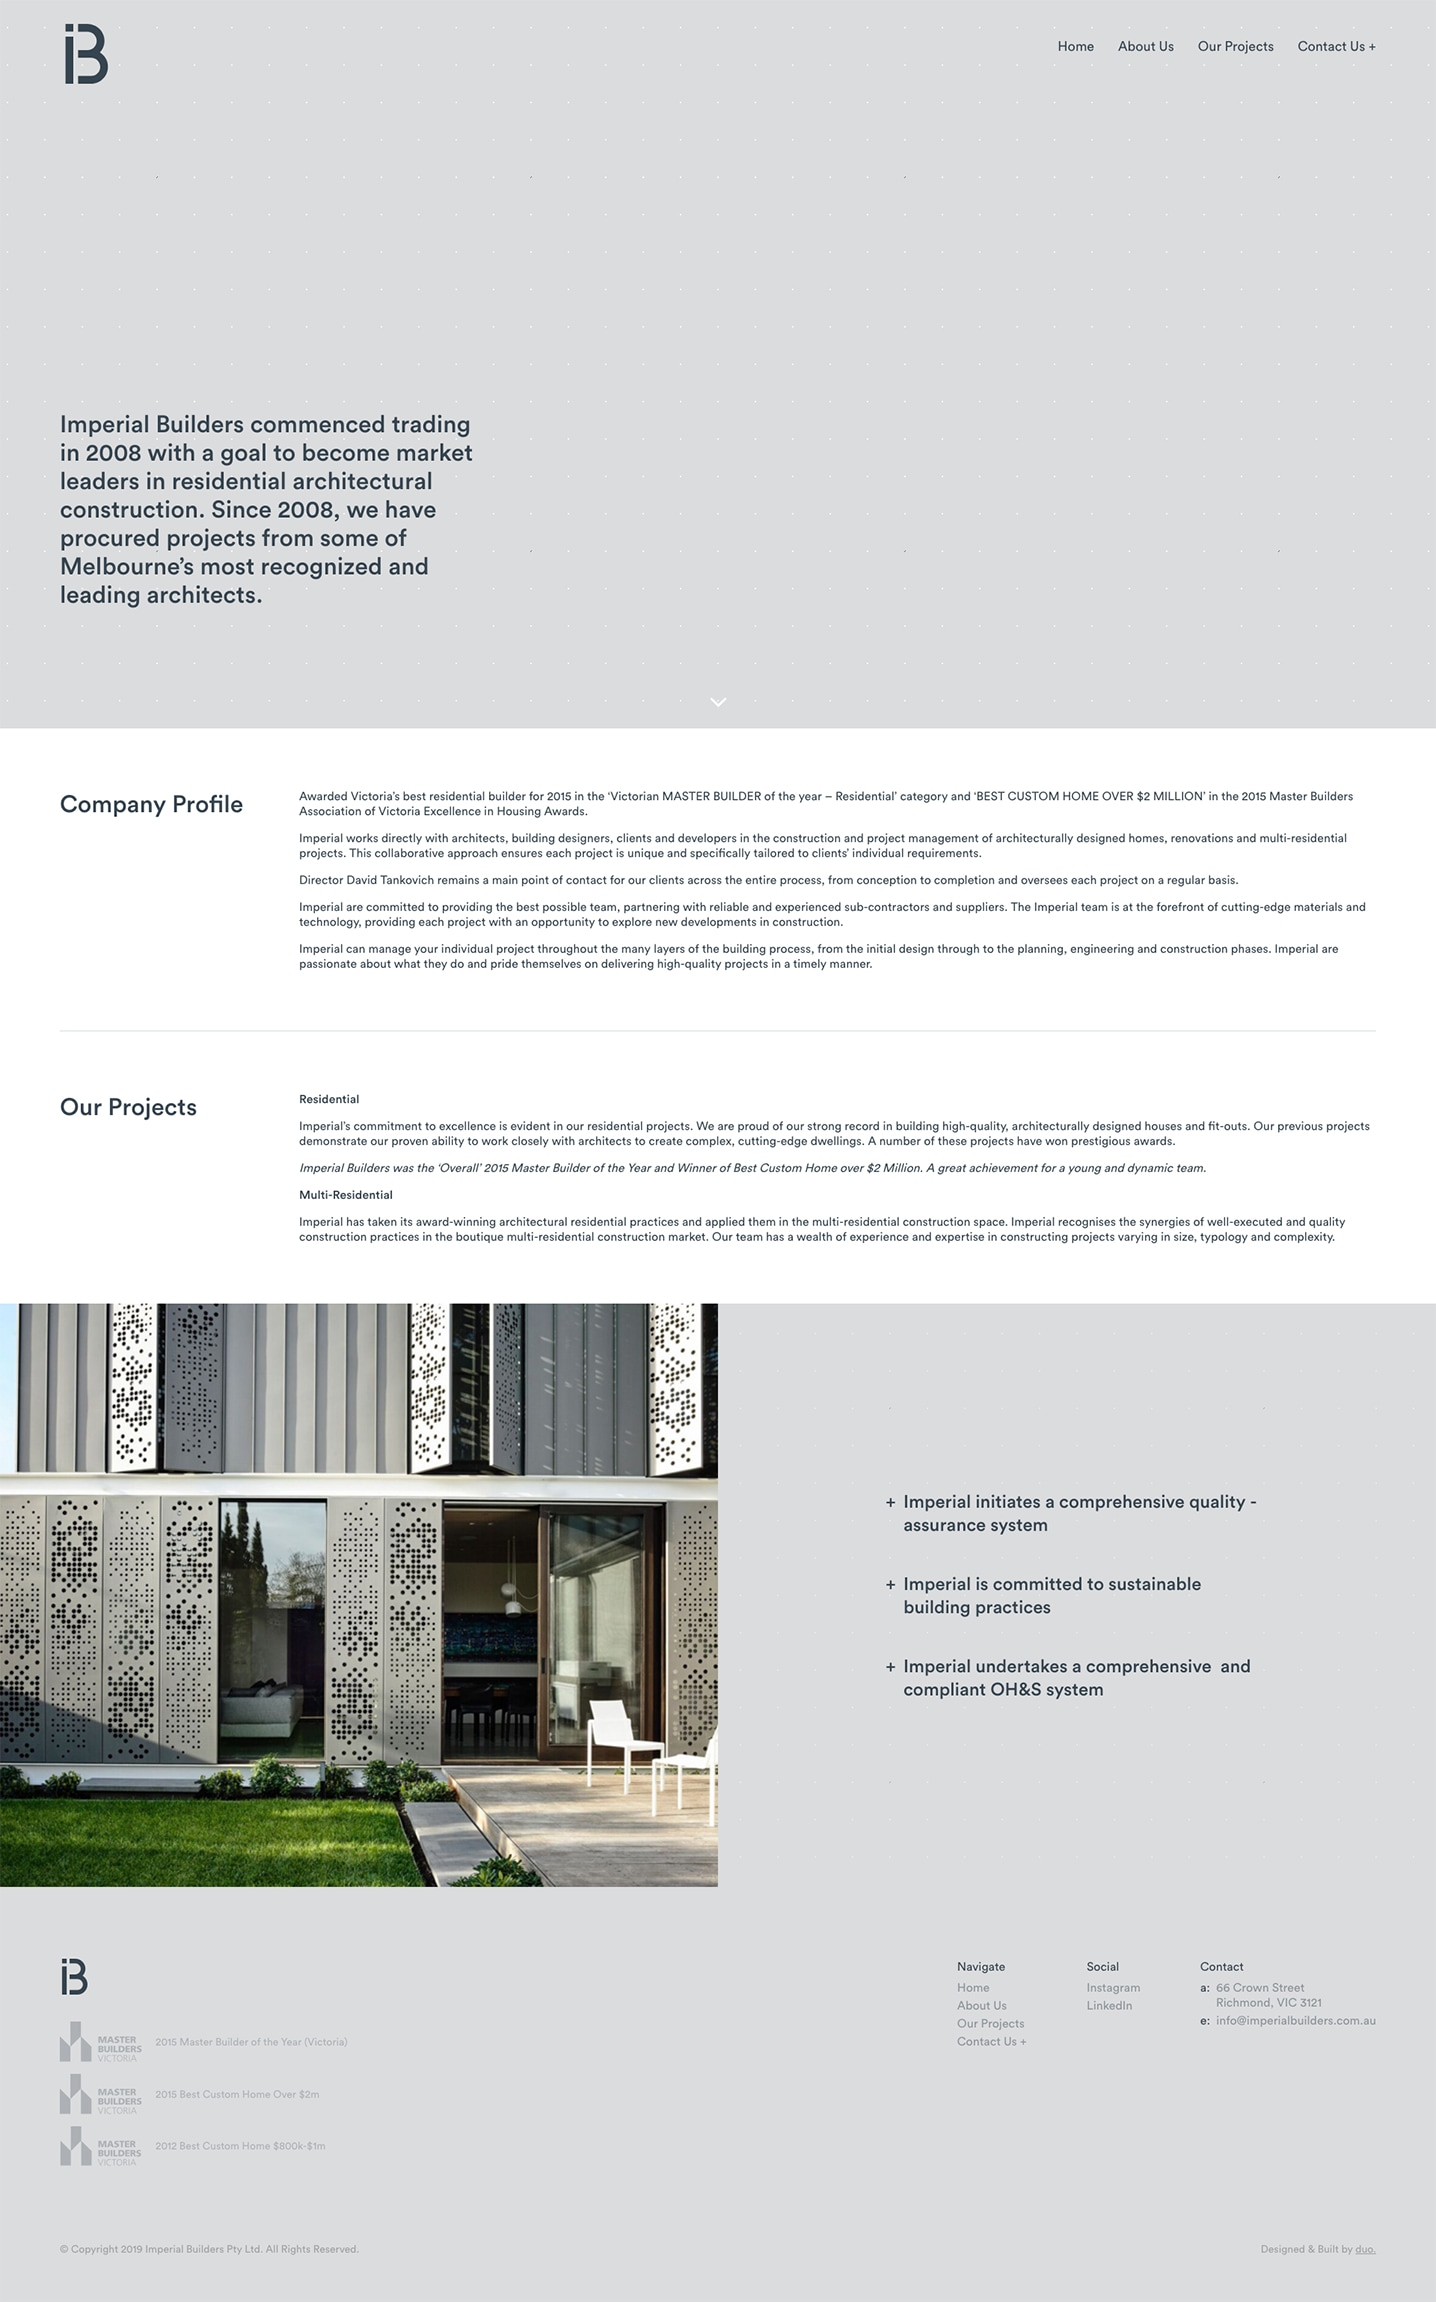 Imperial Builders Website - About Page